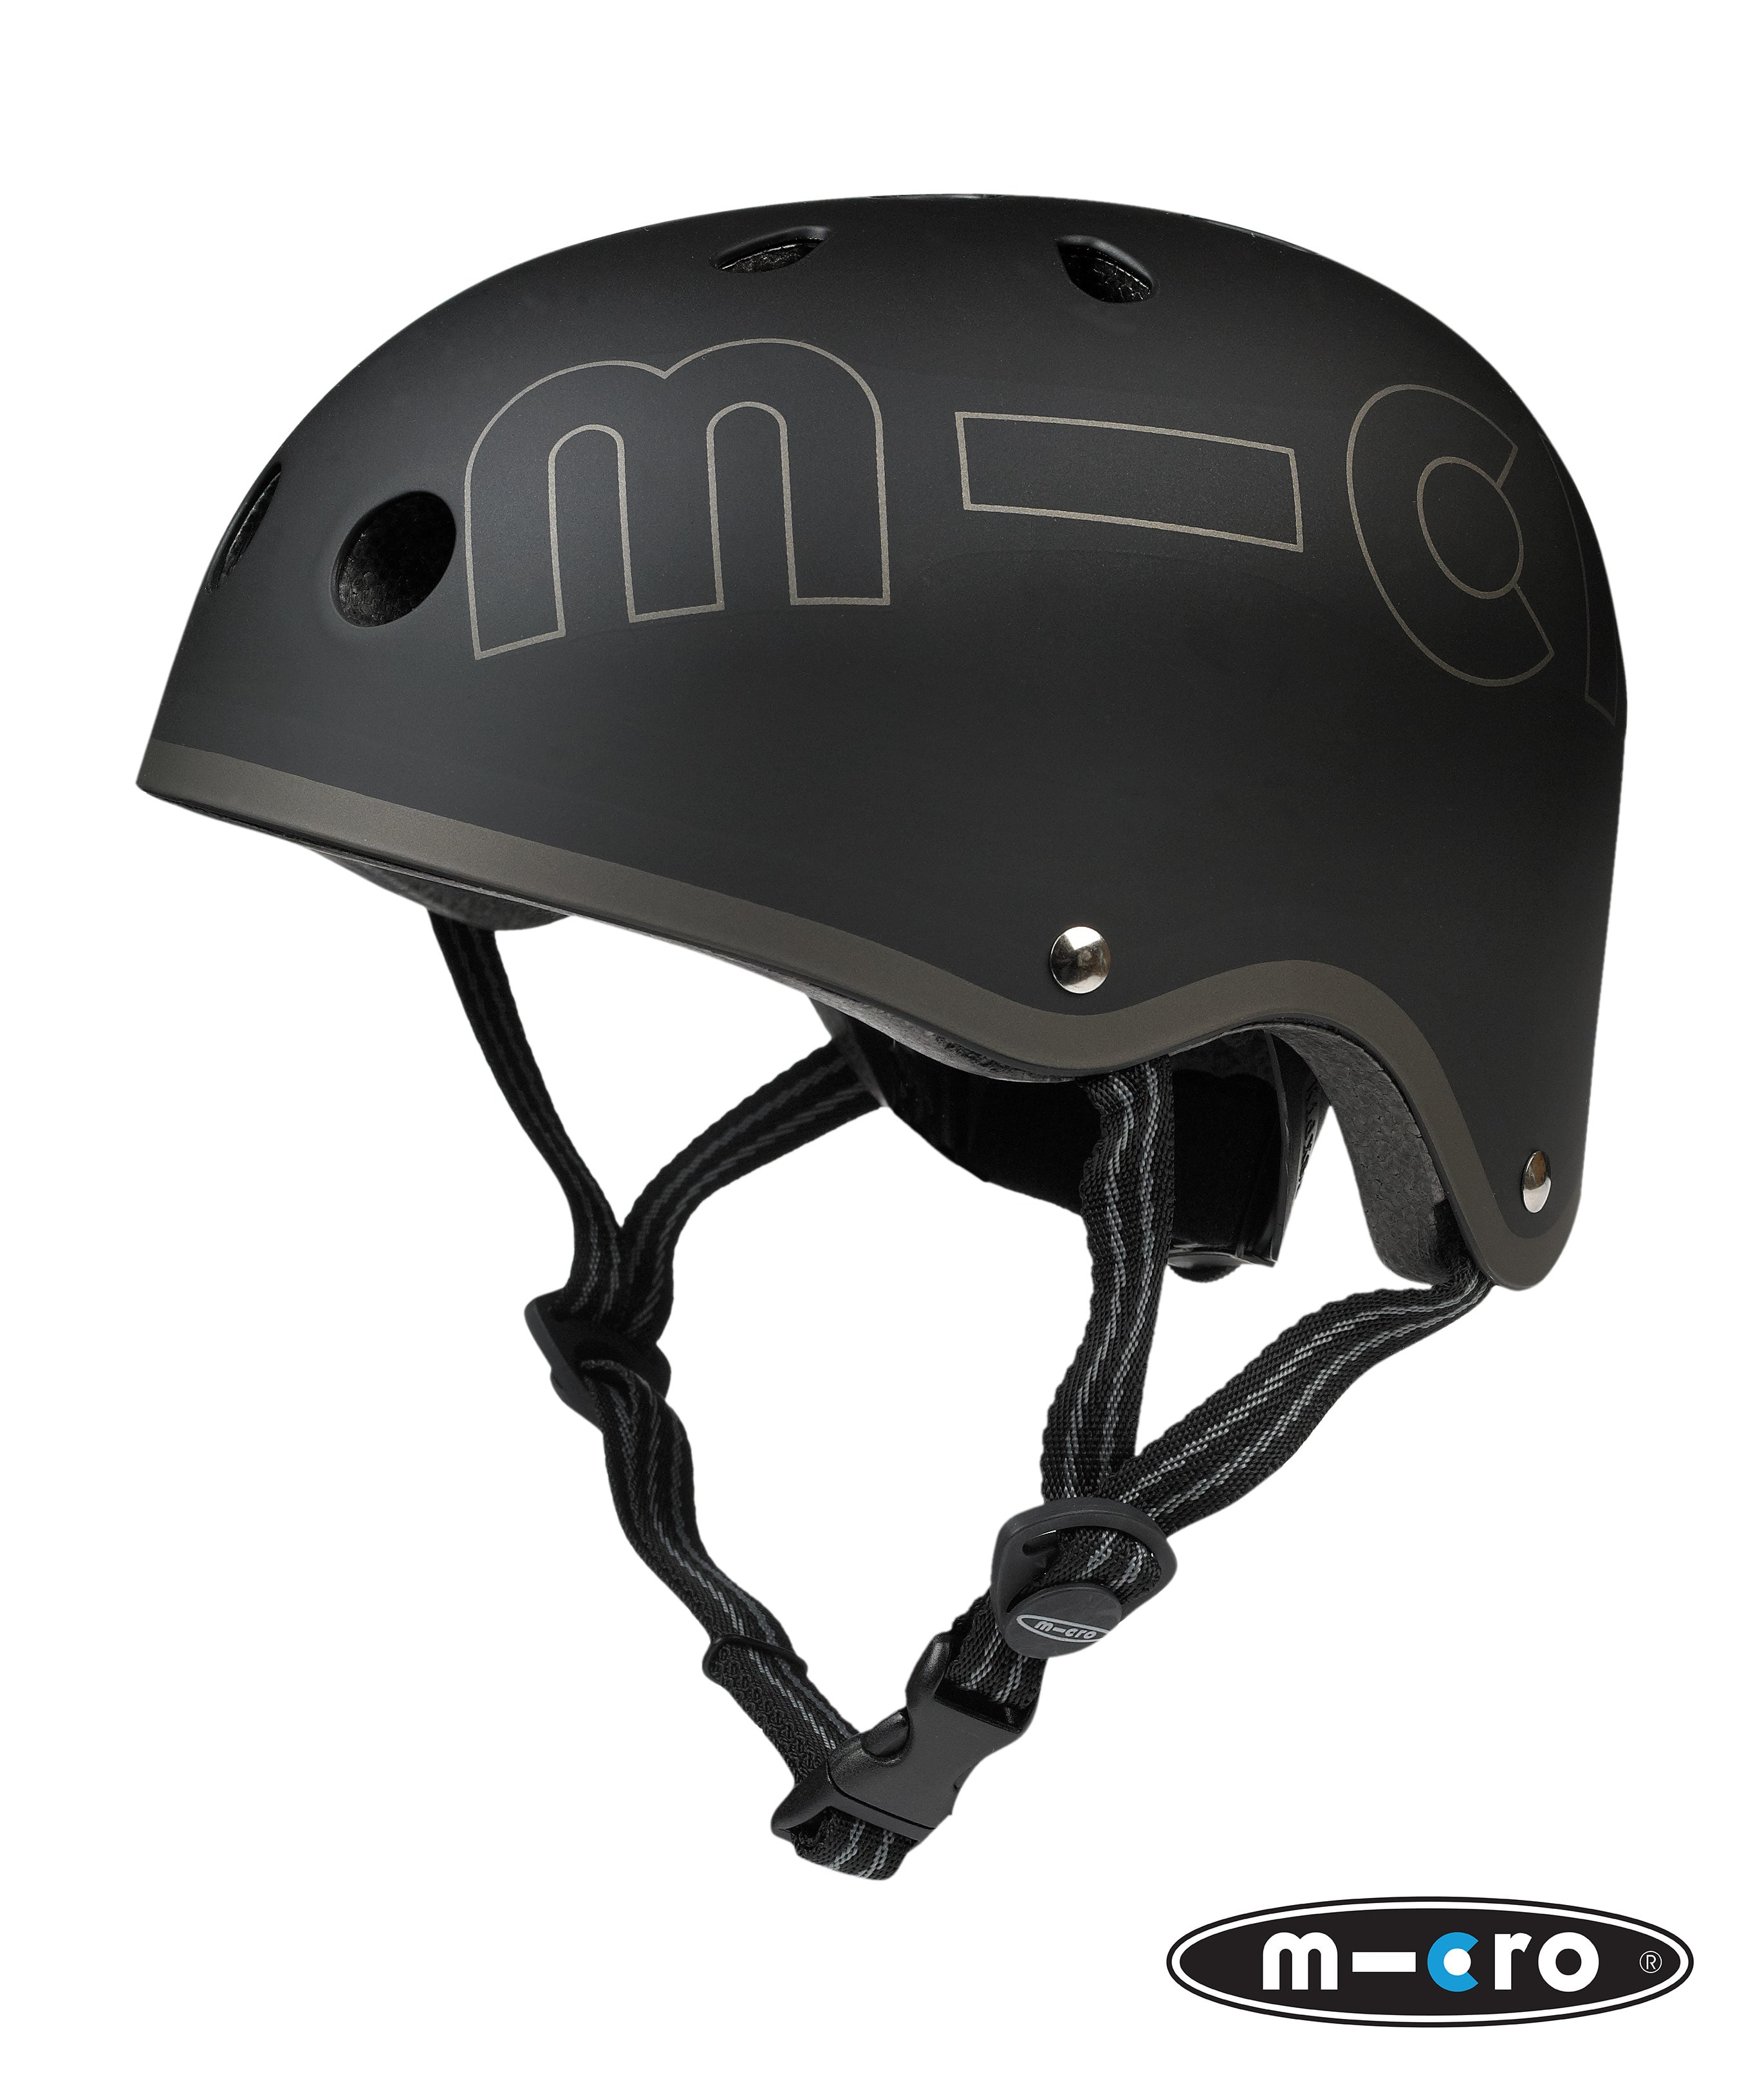 Image of B-Stock Micro Safety Helmet - Black - Small (48-52cm) (Cosmetic Damage/No Box)